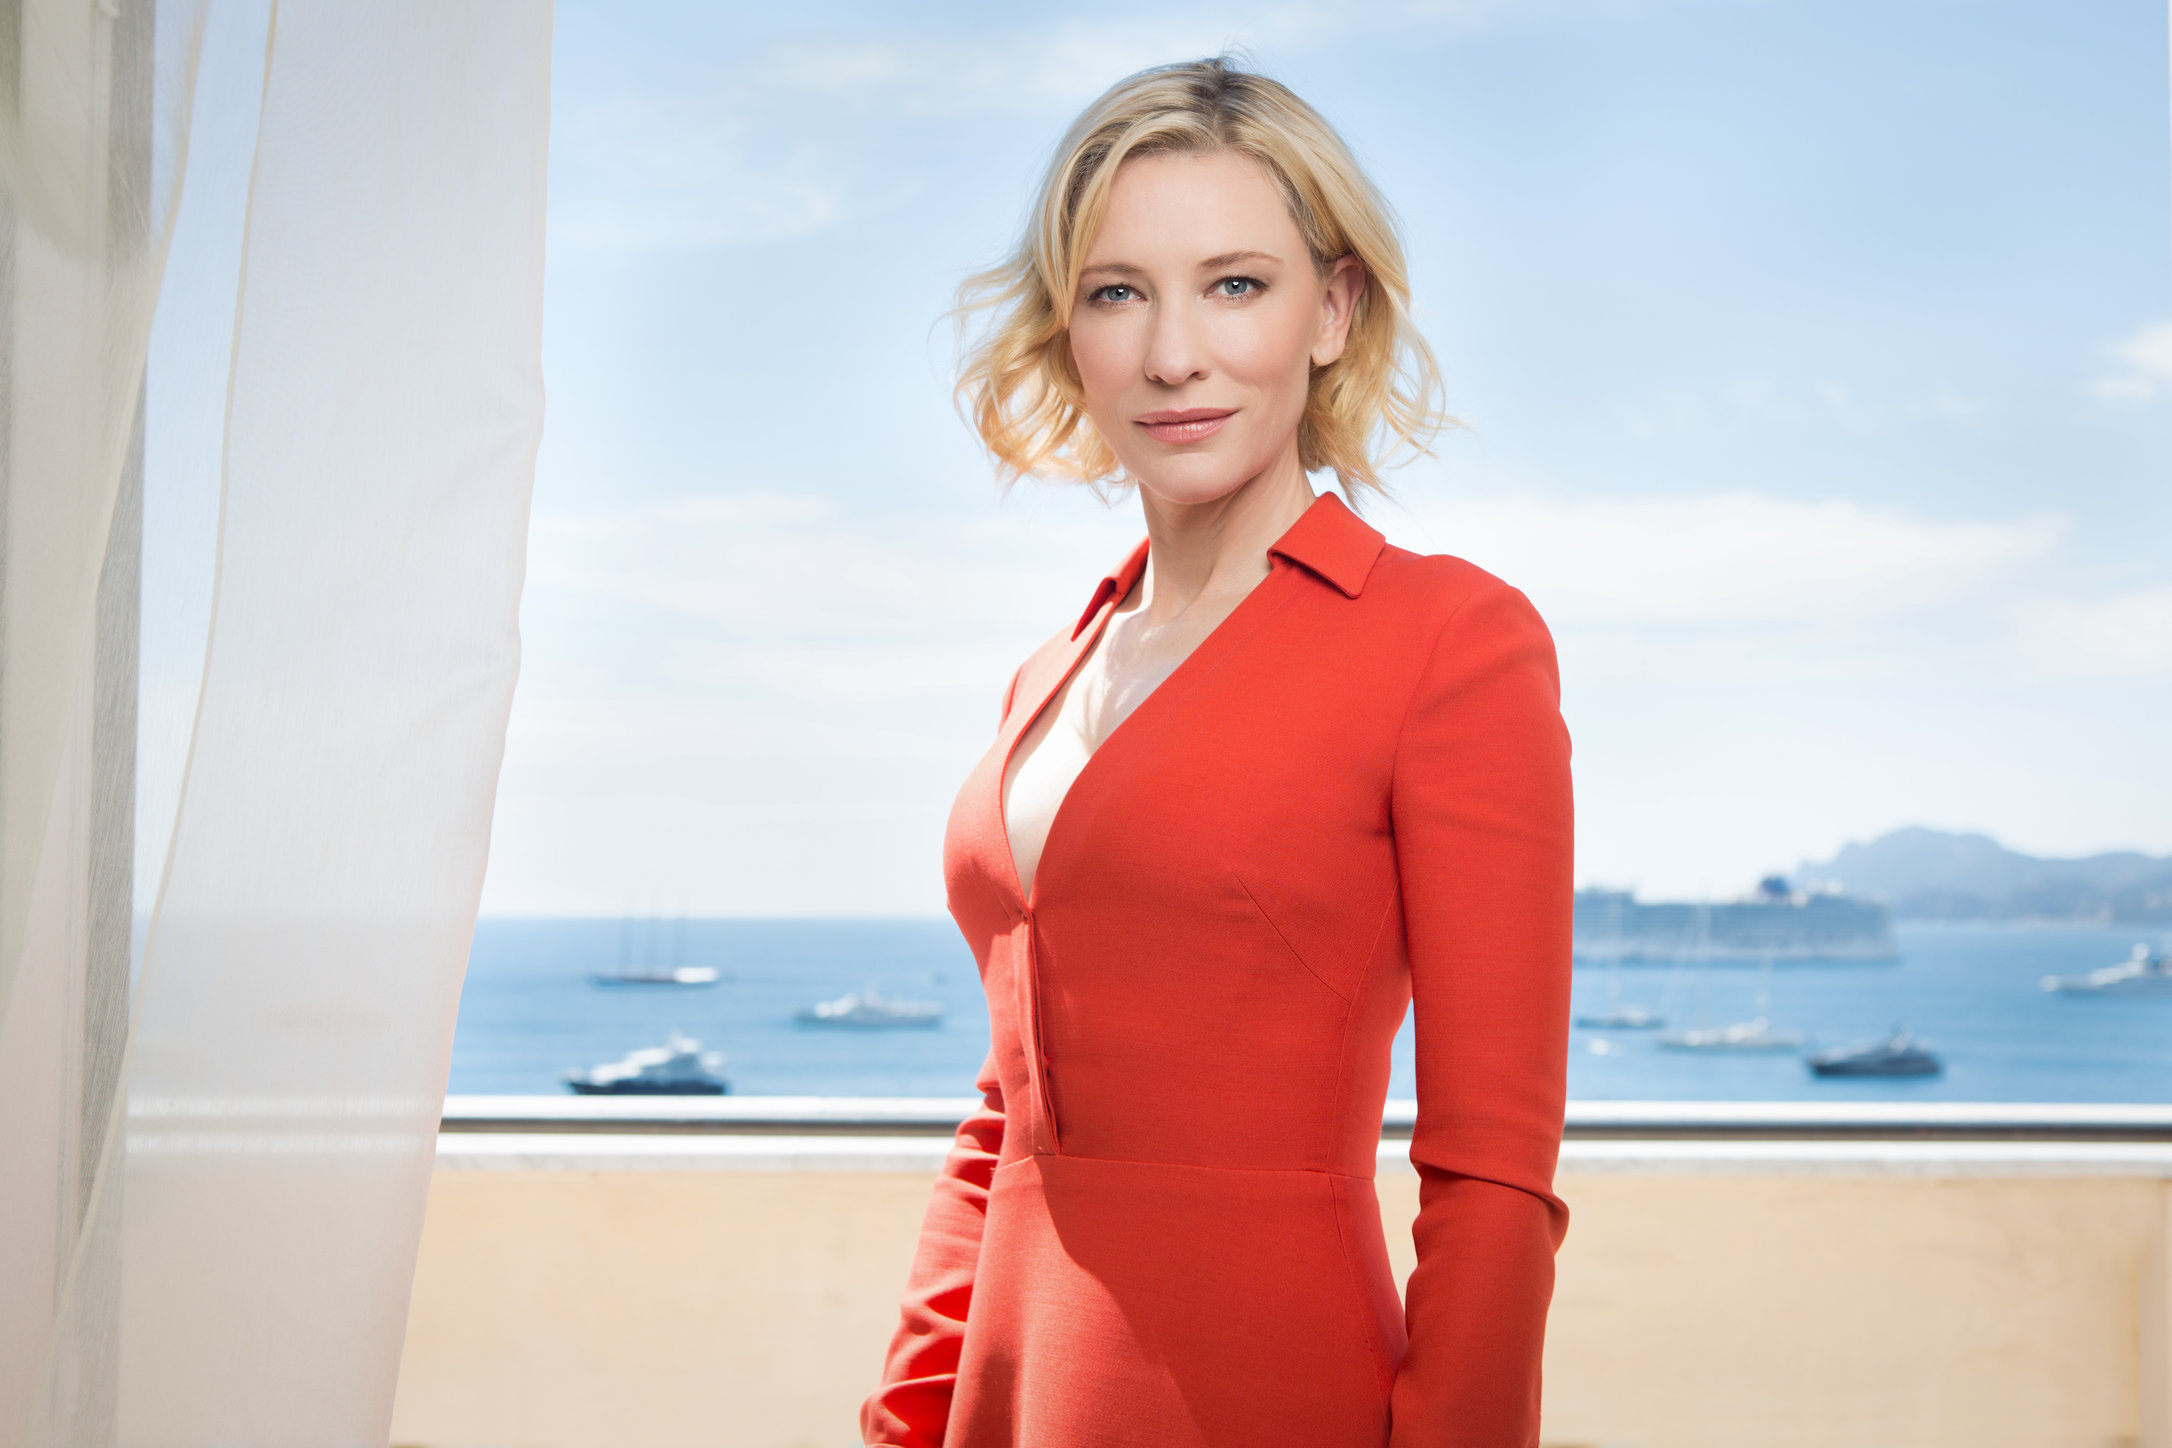 cate blanchett, actress